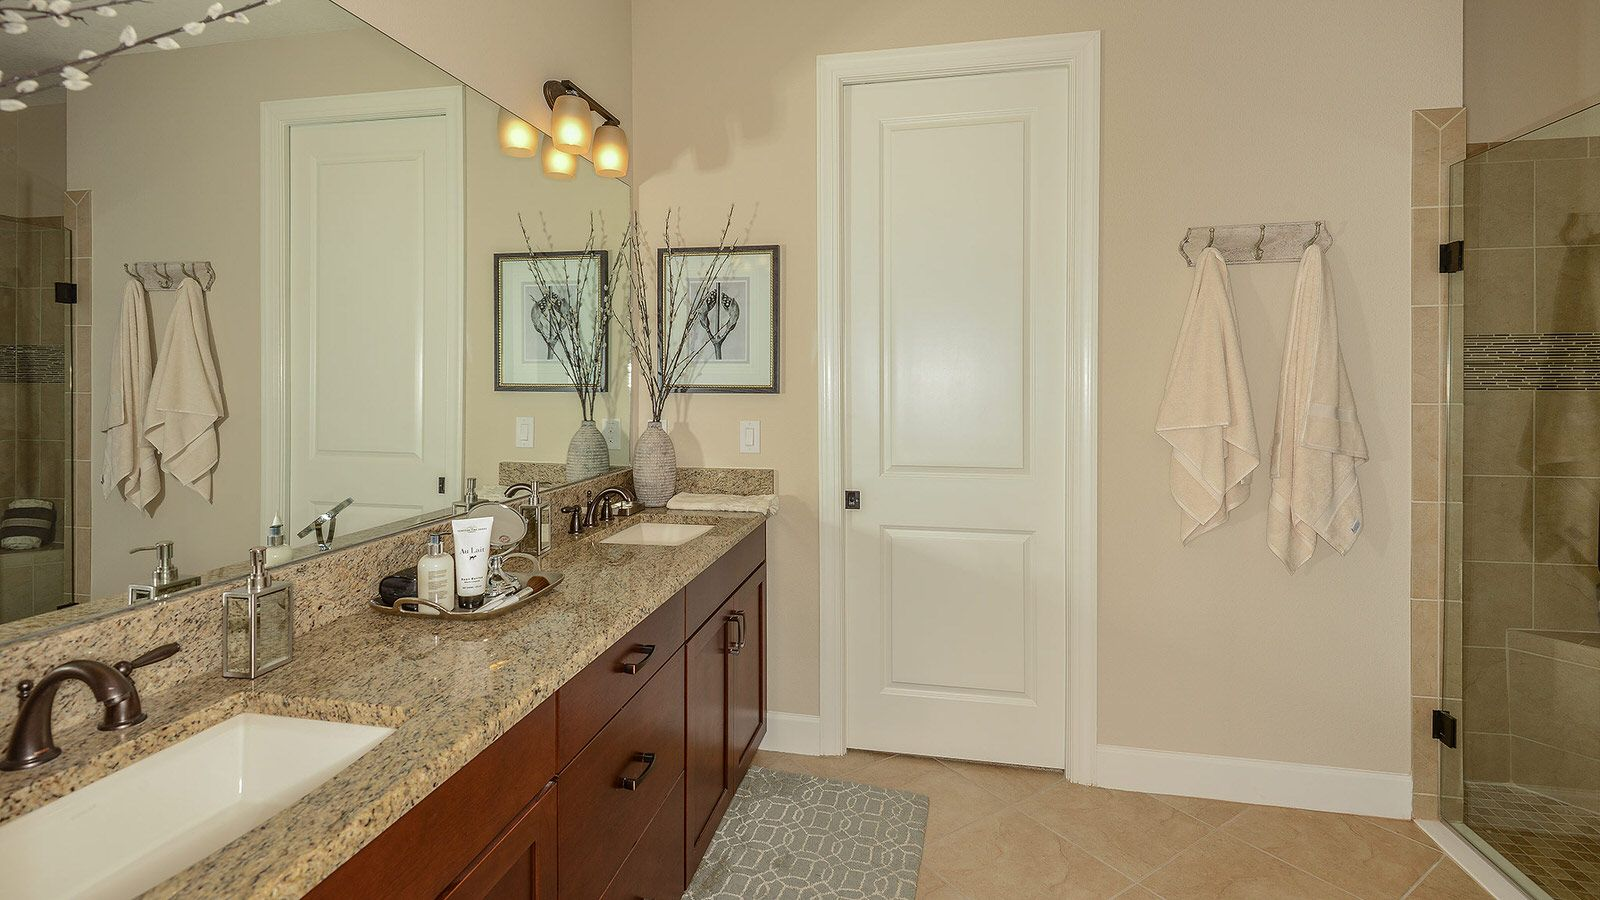 Bathroom featured in the Arezzo Plan By Taylor Morrison in Sarasota-Bradenton, FL